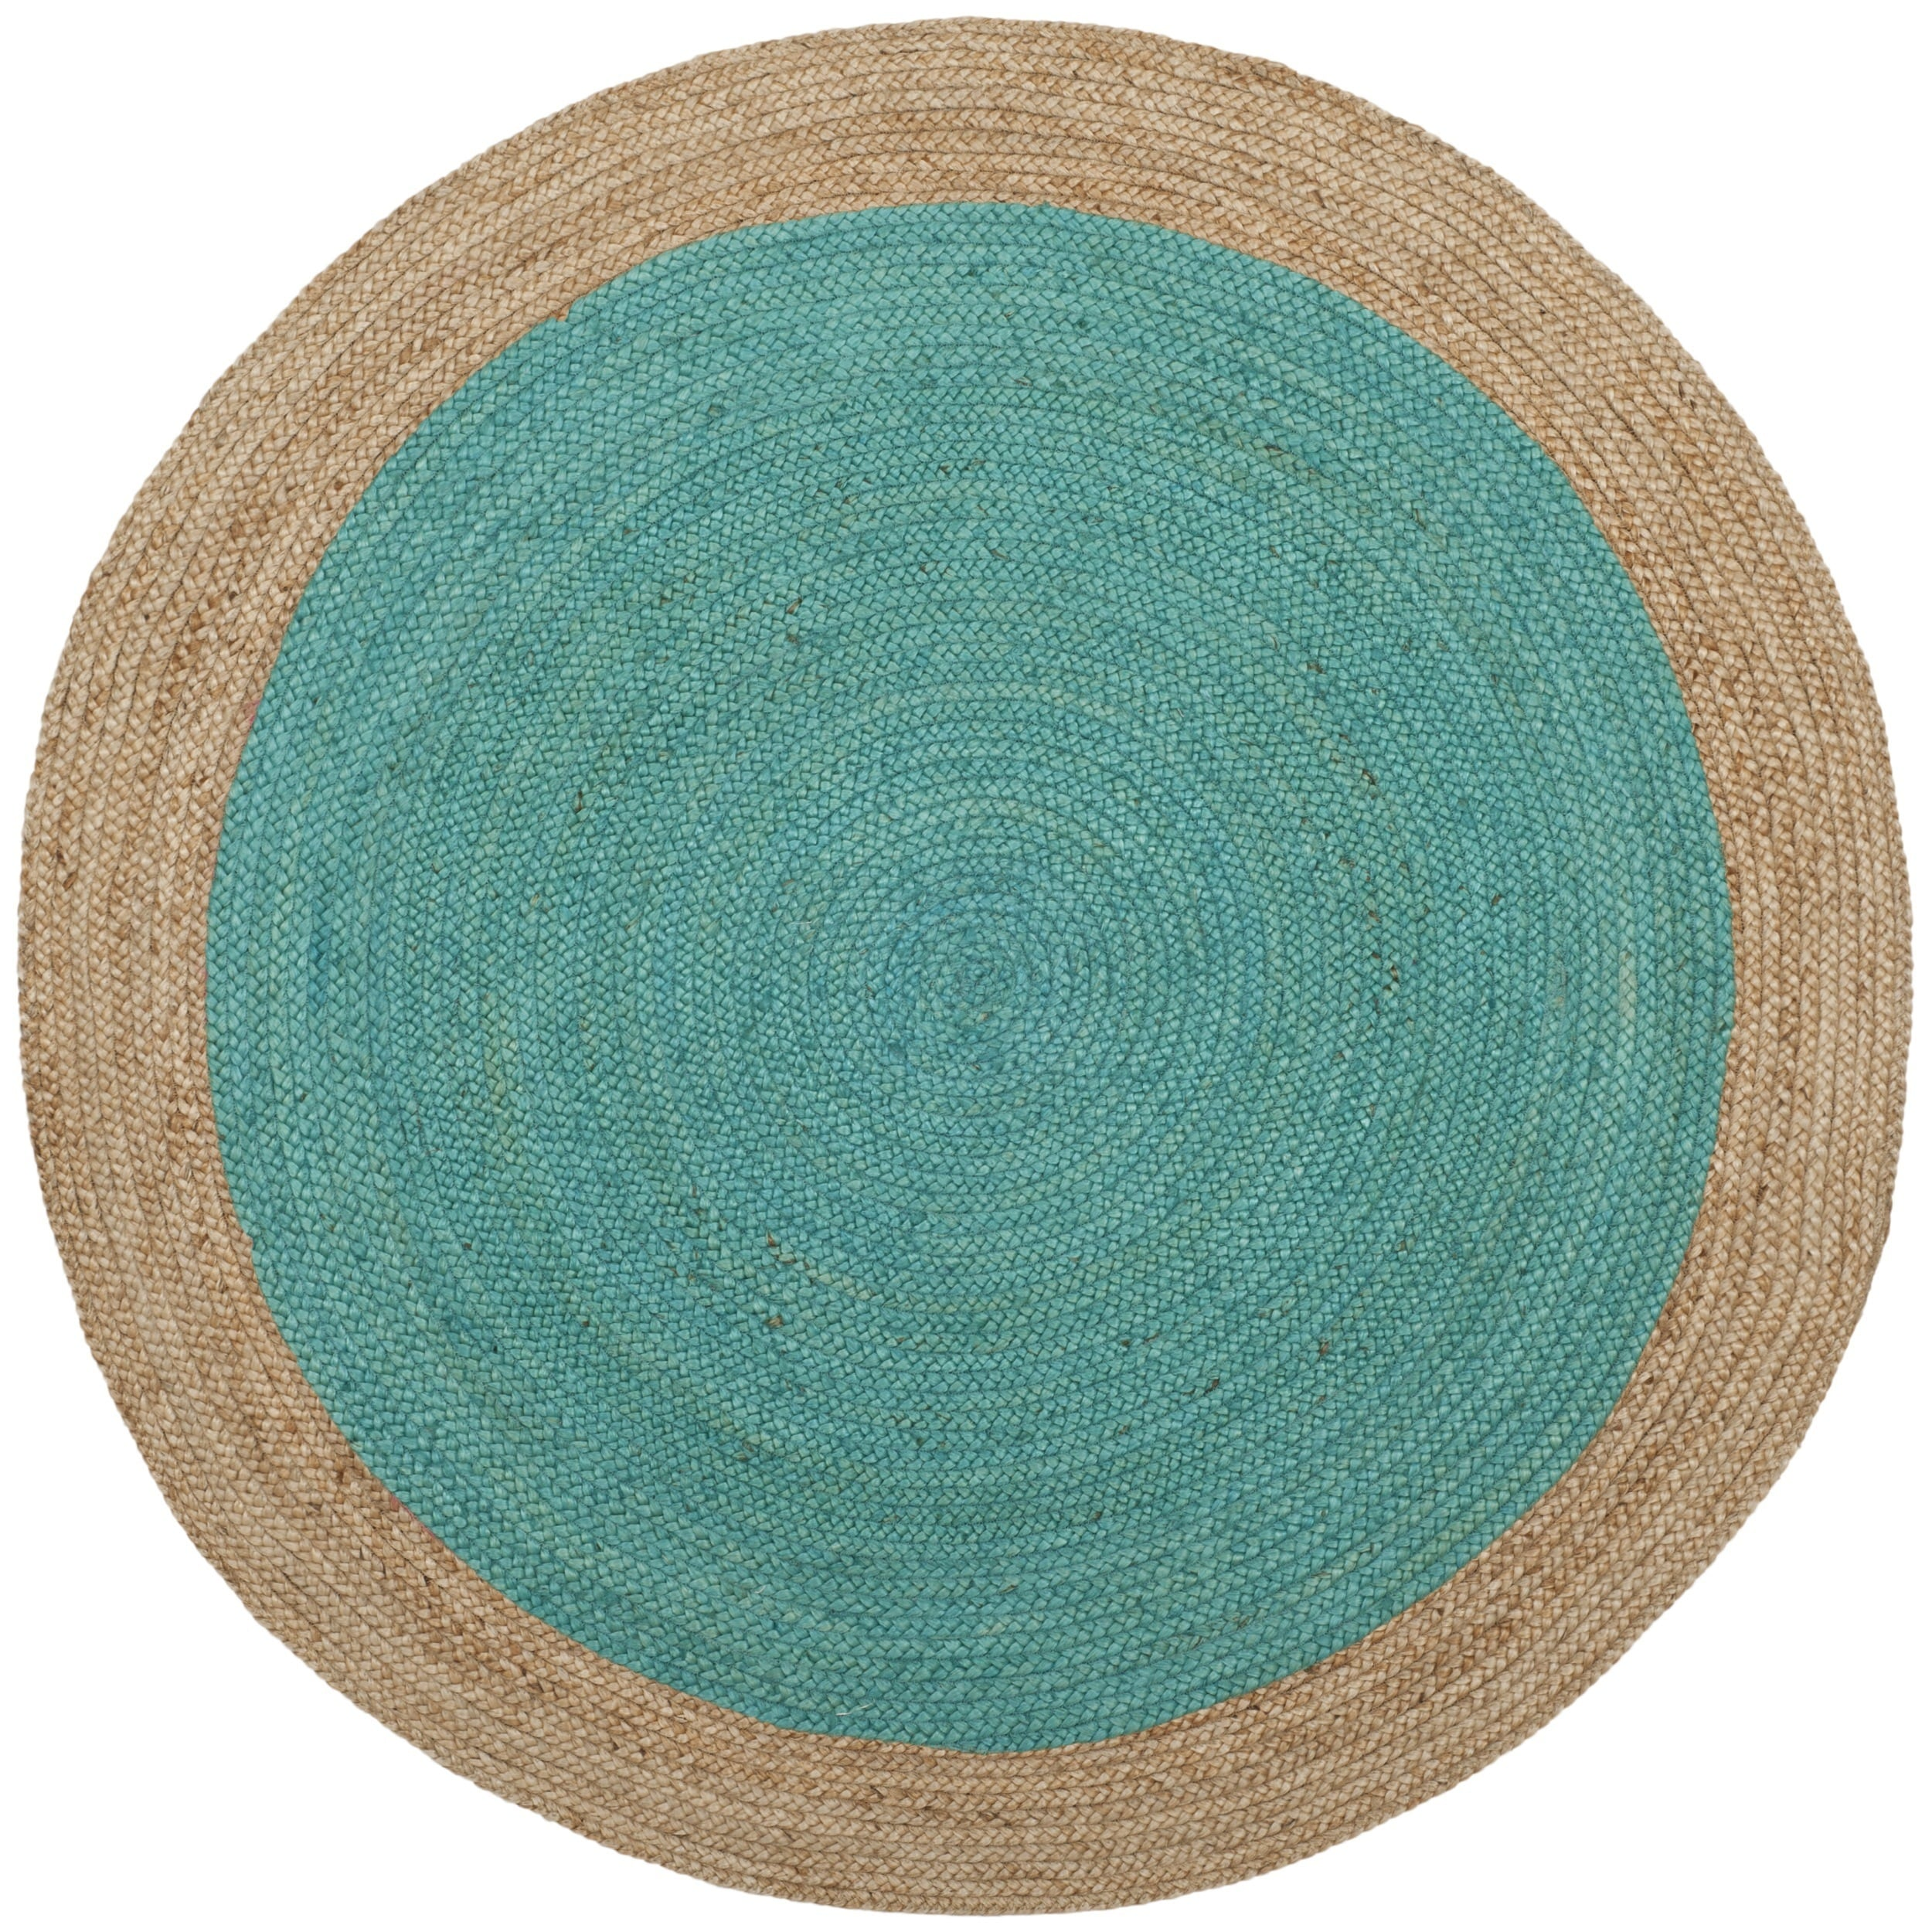 oculus handmade ccda products natural round rug decore green turquoise cm and diameter jute